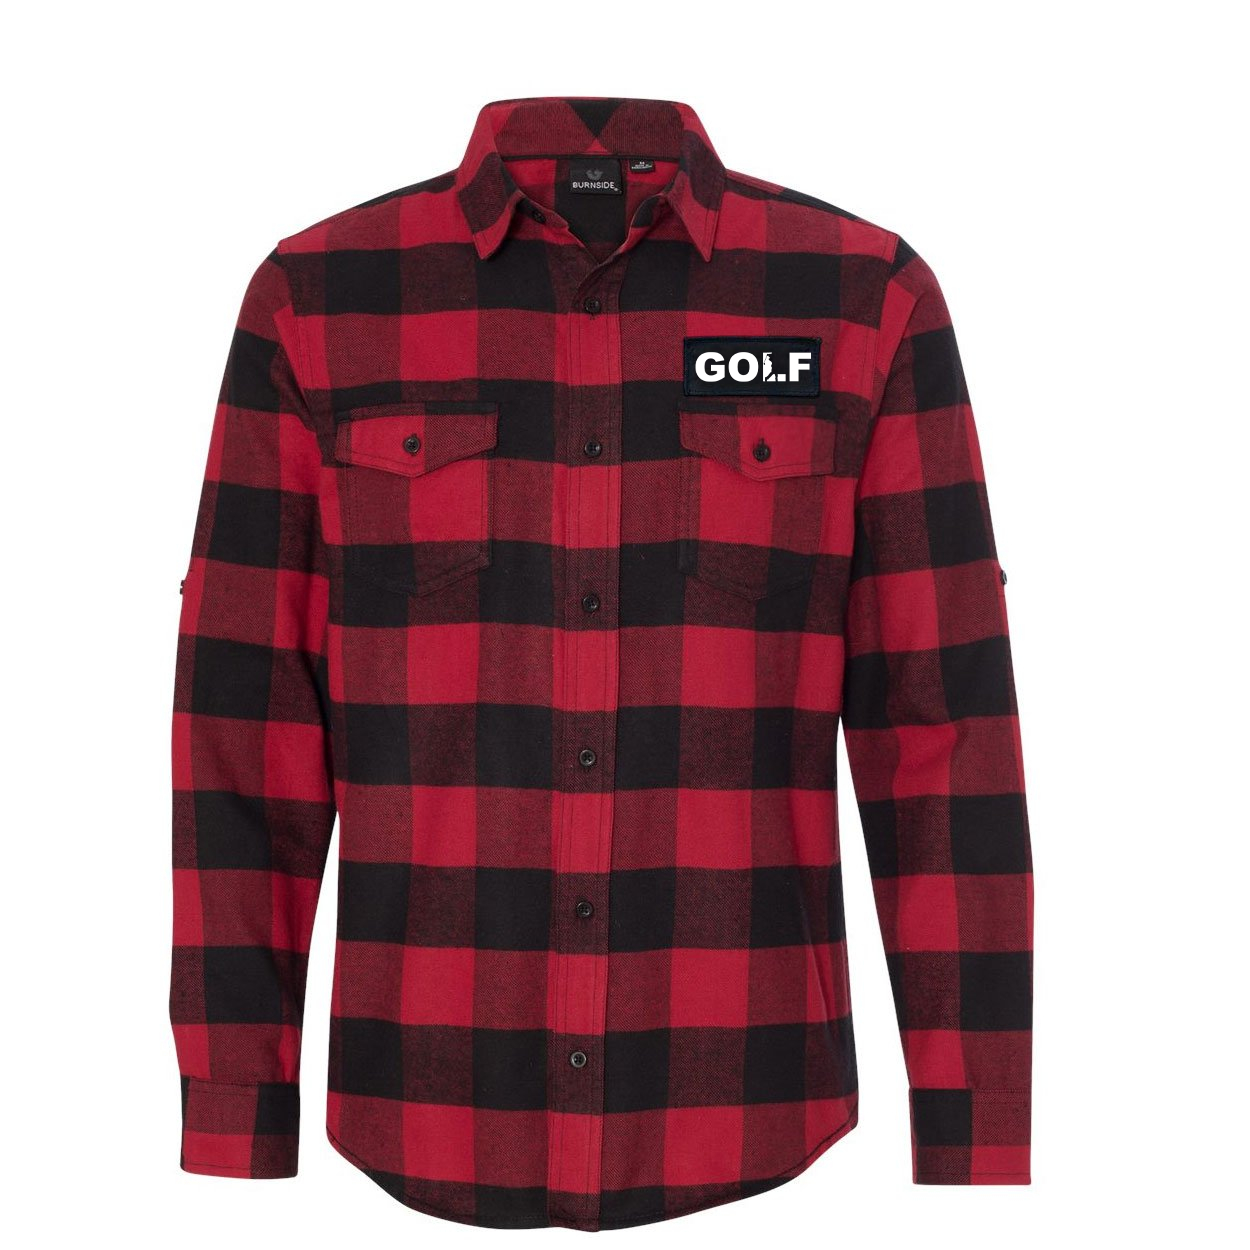 Golf Swing Logo Classic Unisex Long Sleeve Woven Patch Flannel Shirt Red/Black Buffalo (White Logo)